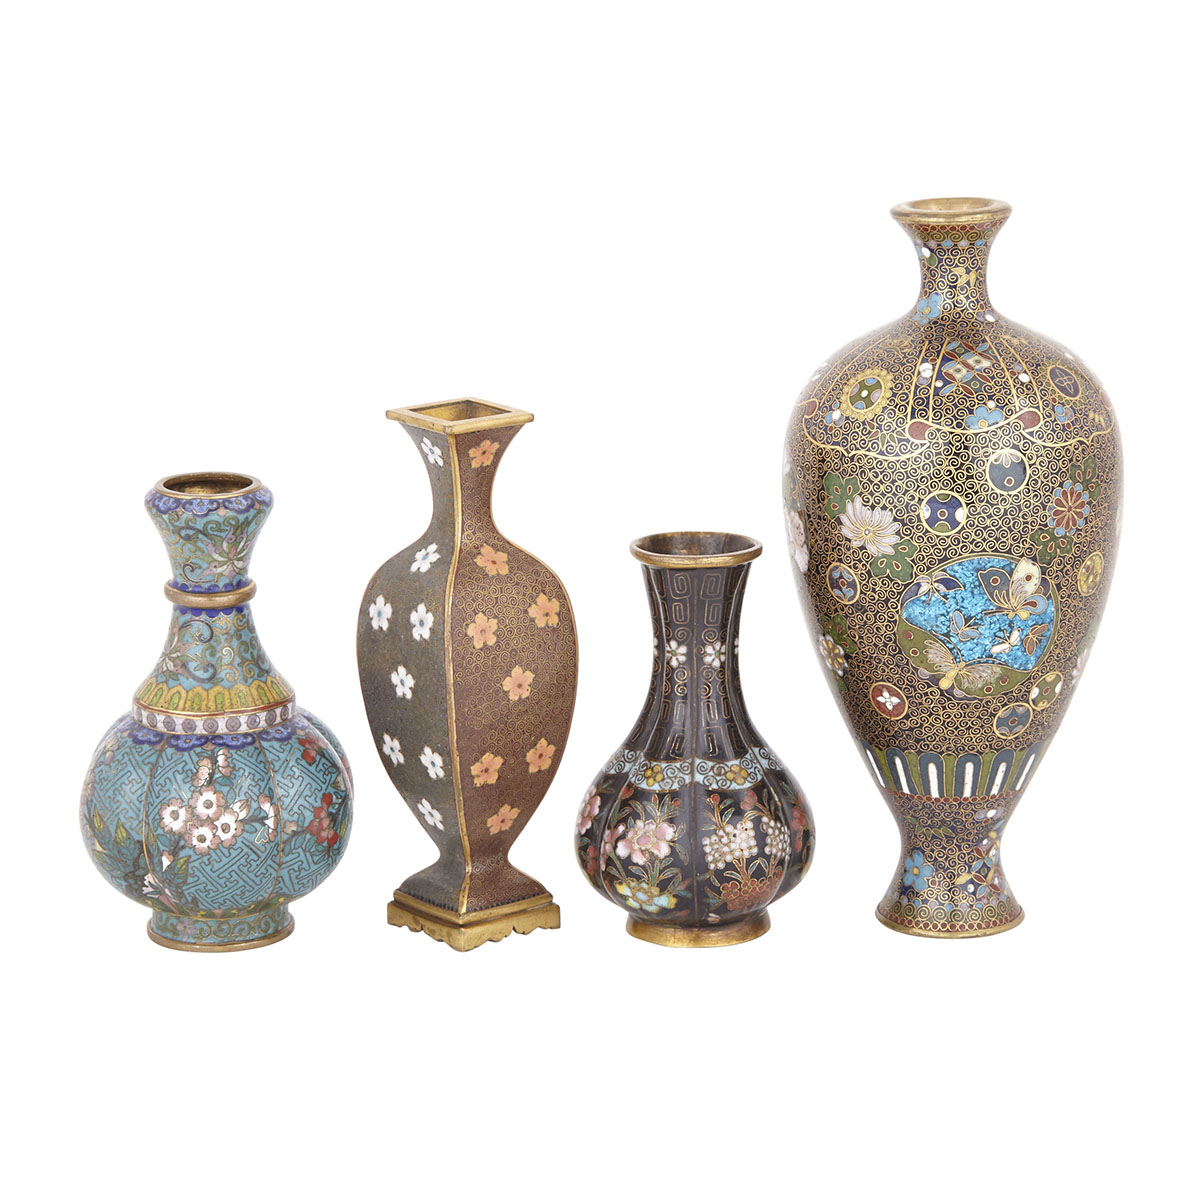 Group of Four Cloisonné Miniature Vases, Early 20th Century